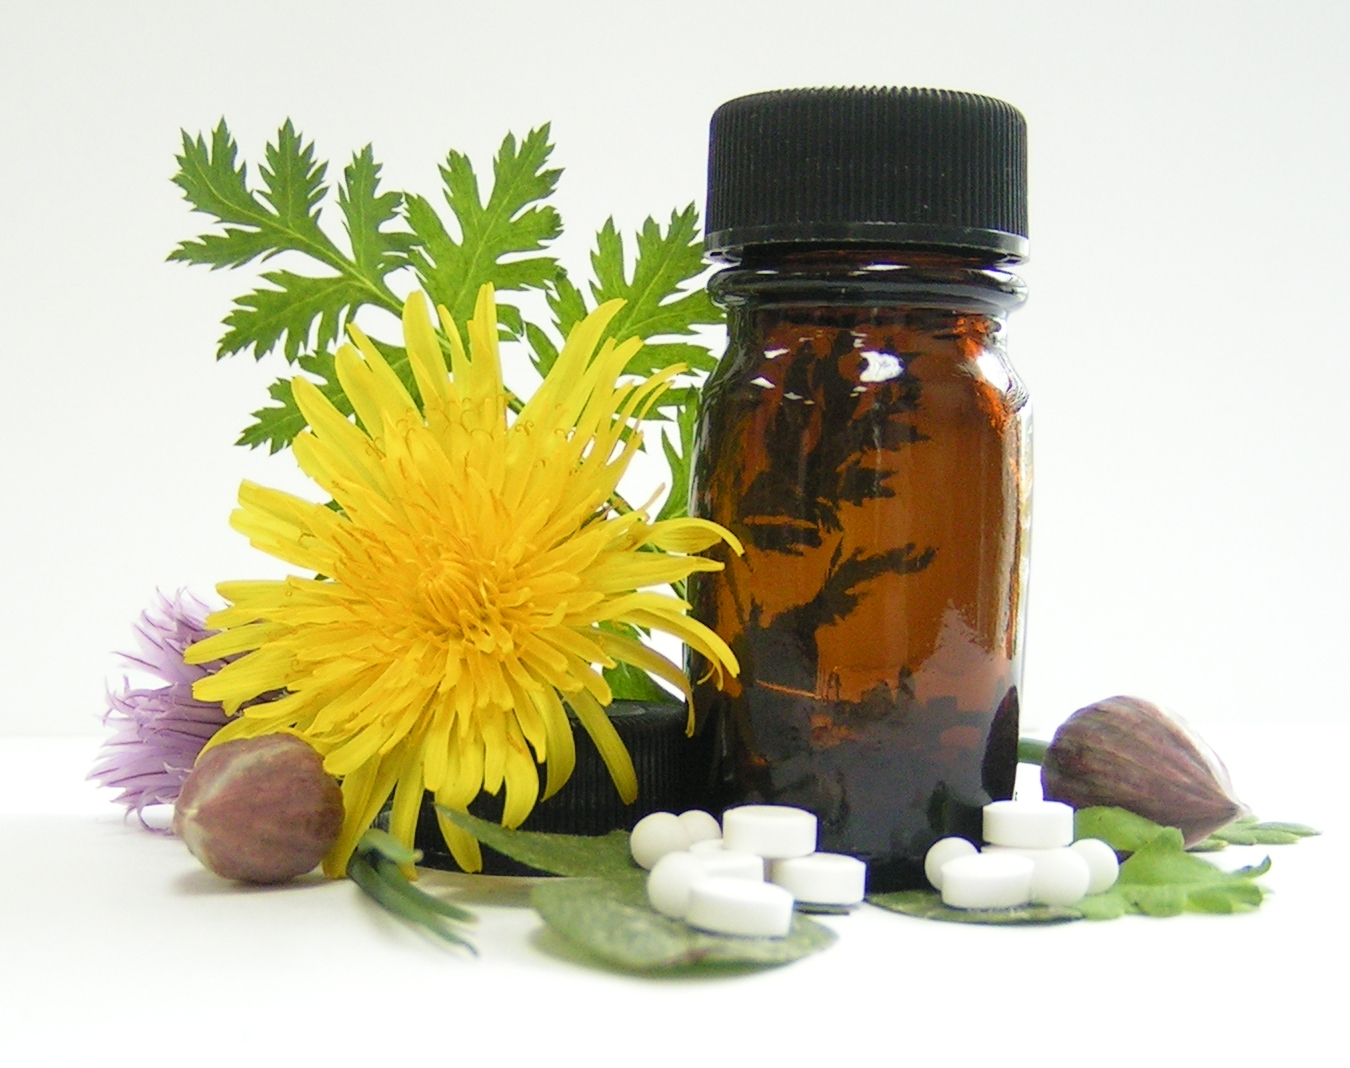 Flowers and their medicinal uses